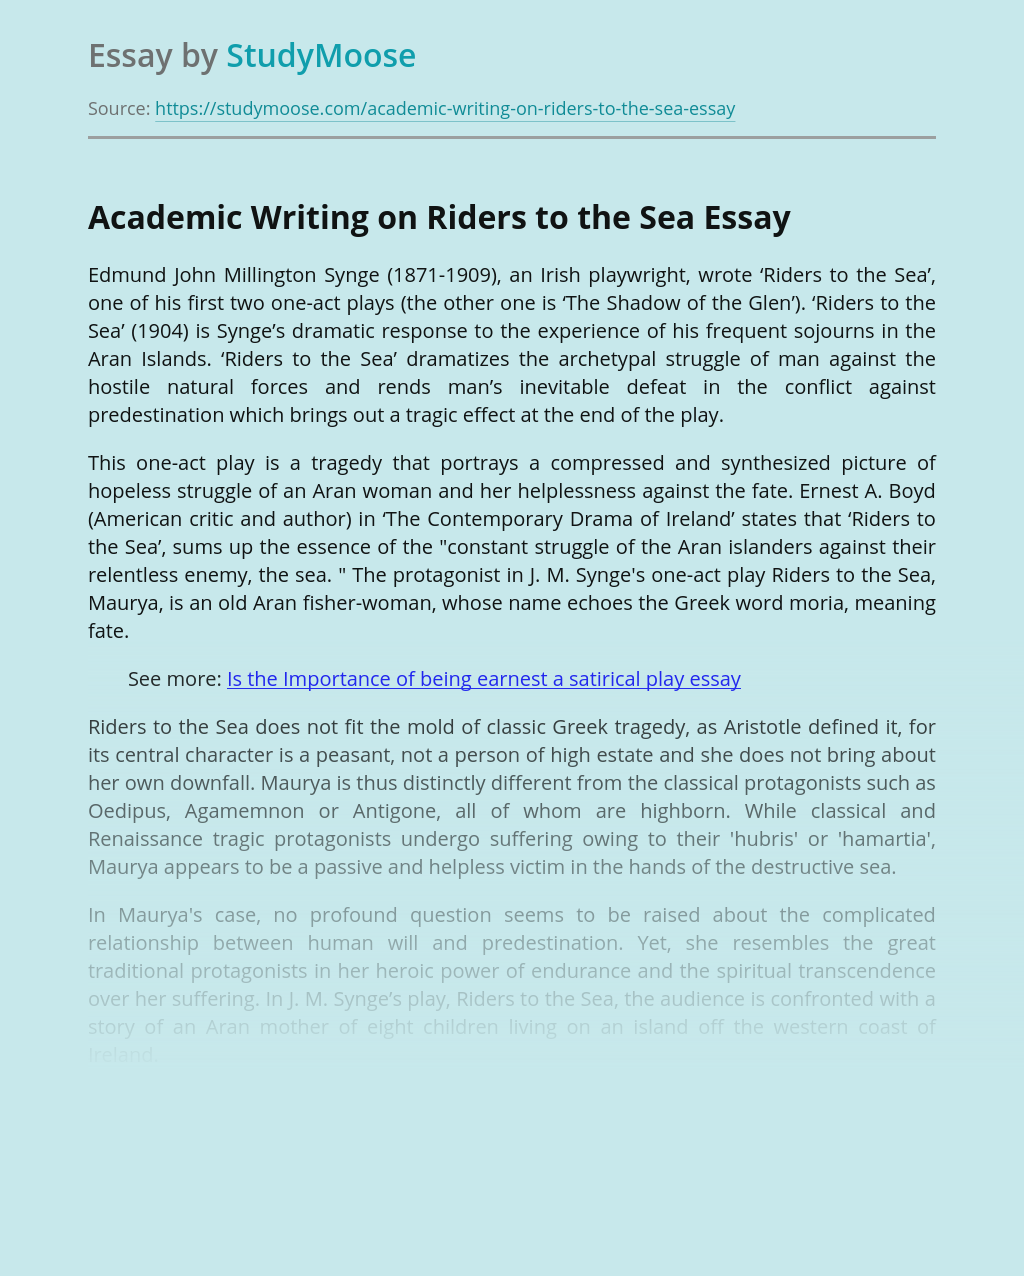 Academic Writing on Riders to the Sea